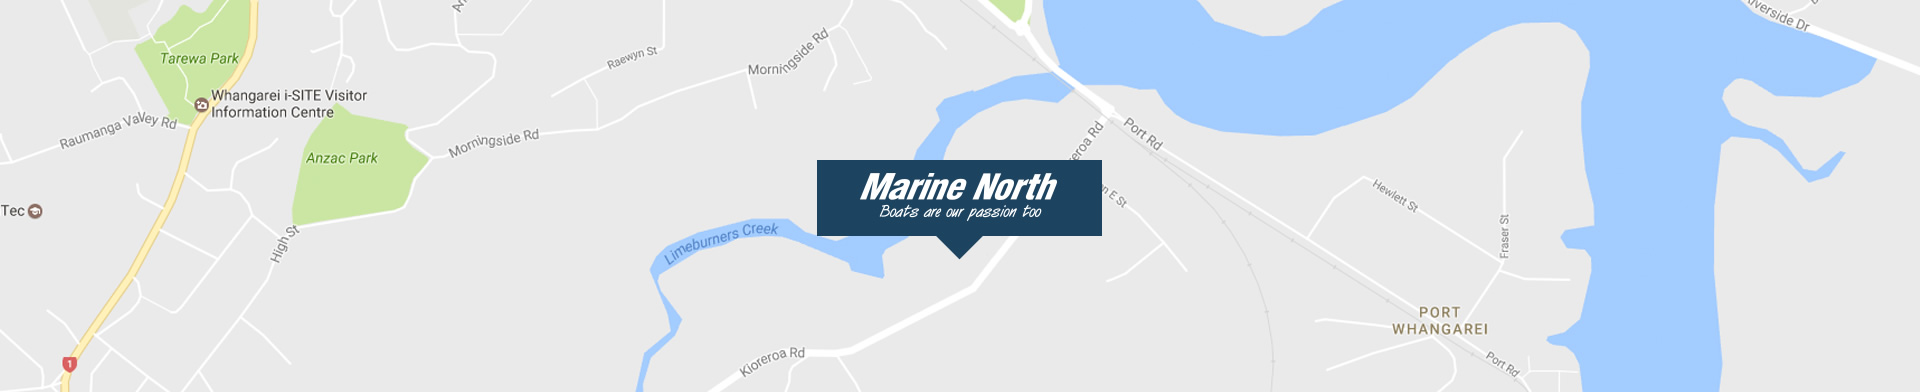 location marine north